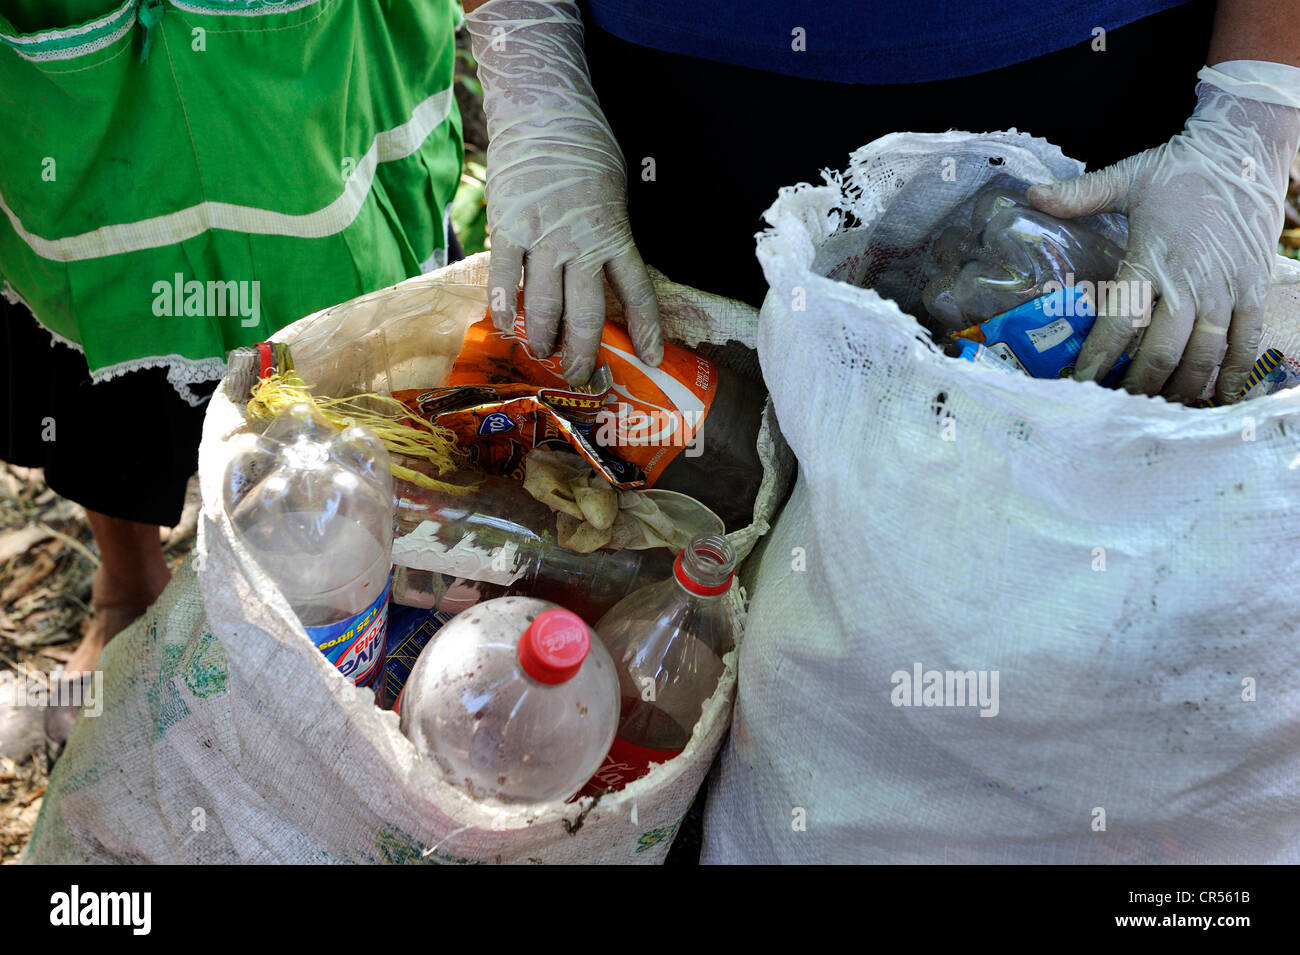 Rubbish bags full of rubbish collected by women in a clean-up operation organised by the Swiss Red Cross, the rubbish - Stock Image